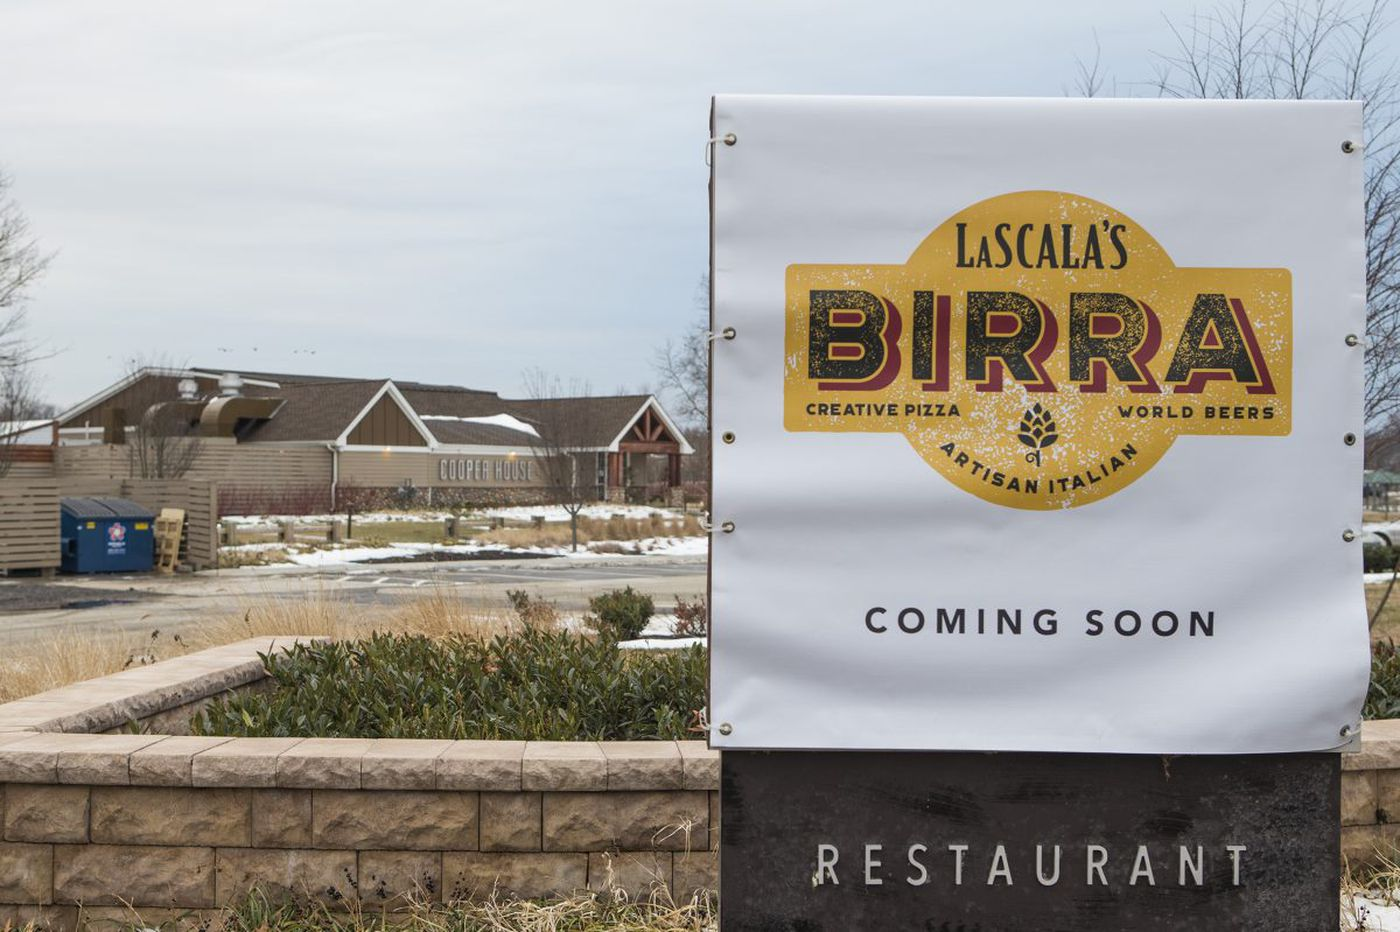 LaScala Restaurant opening soon at Cooper River Park